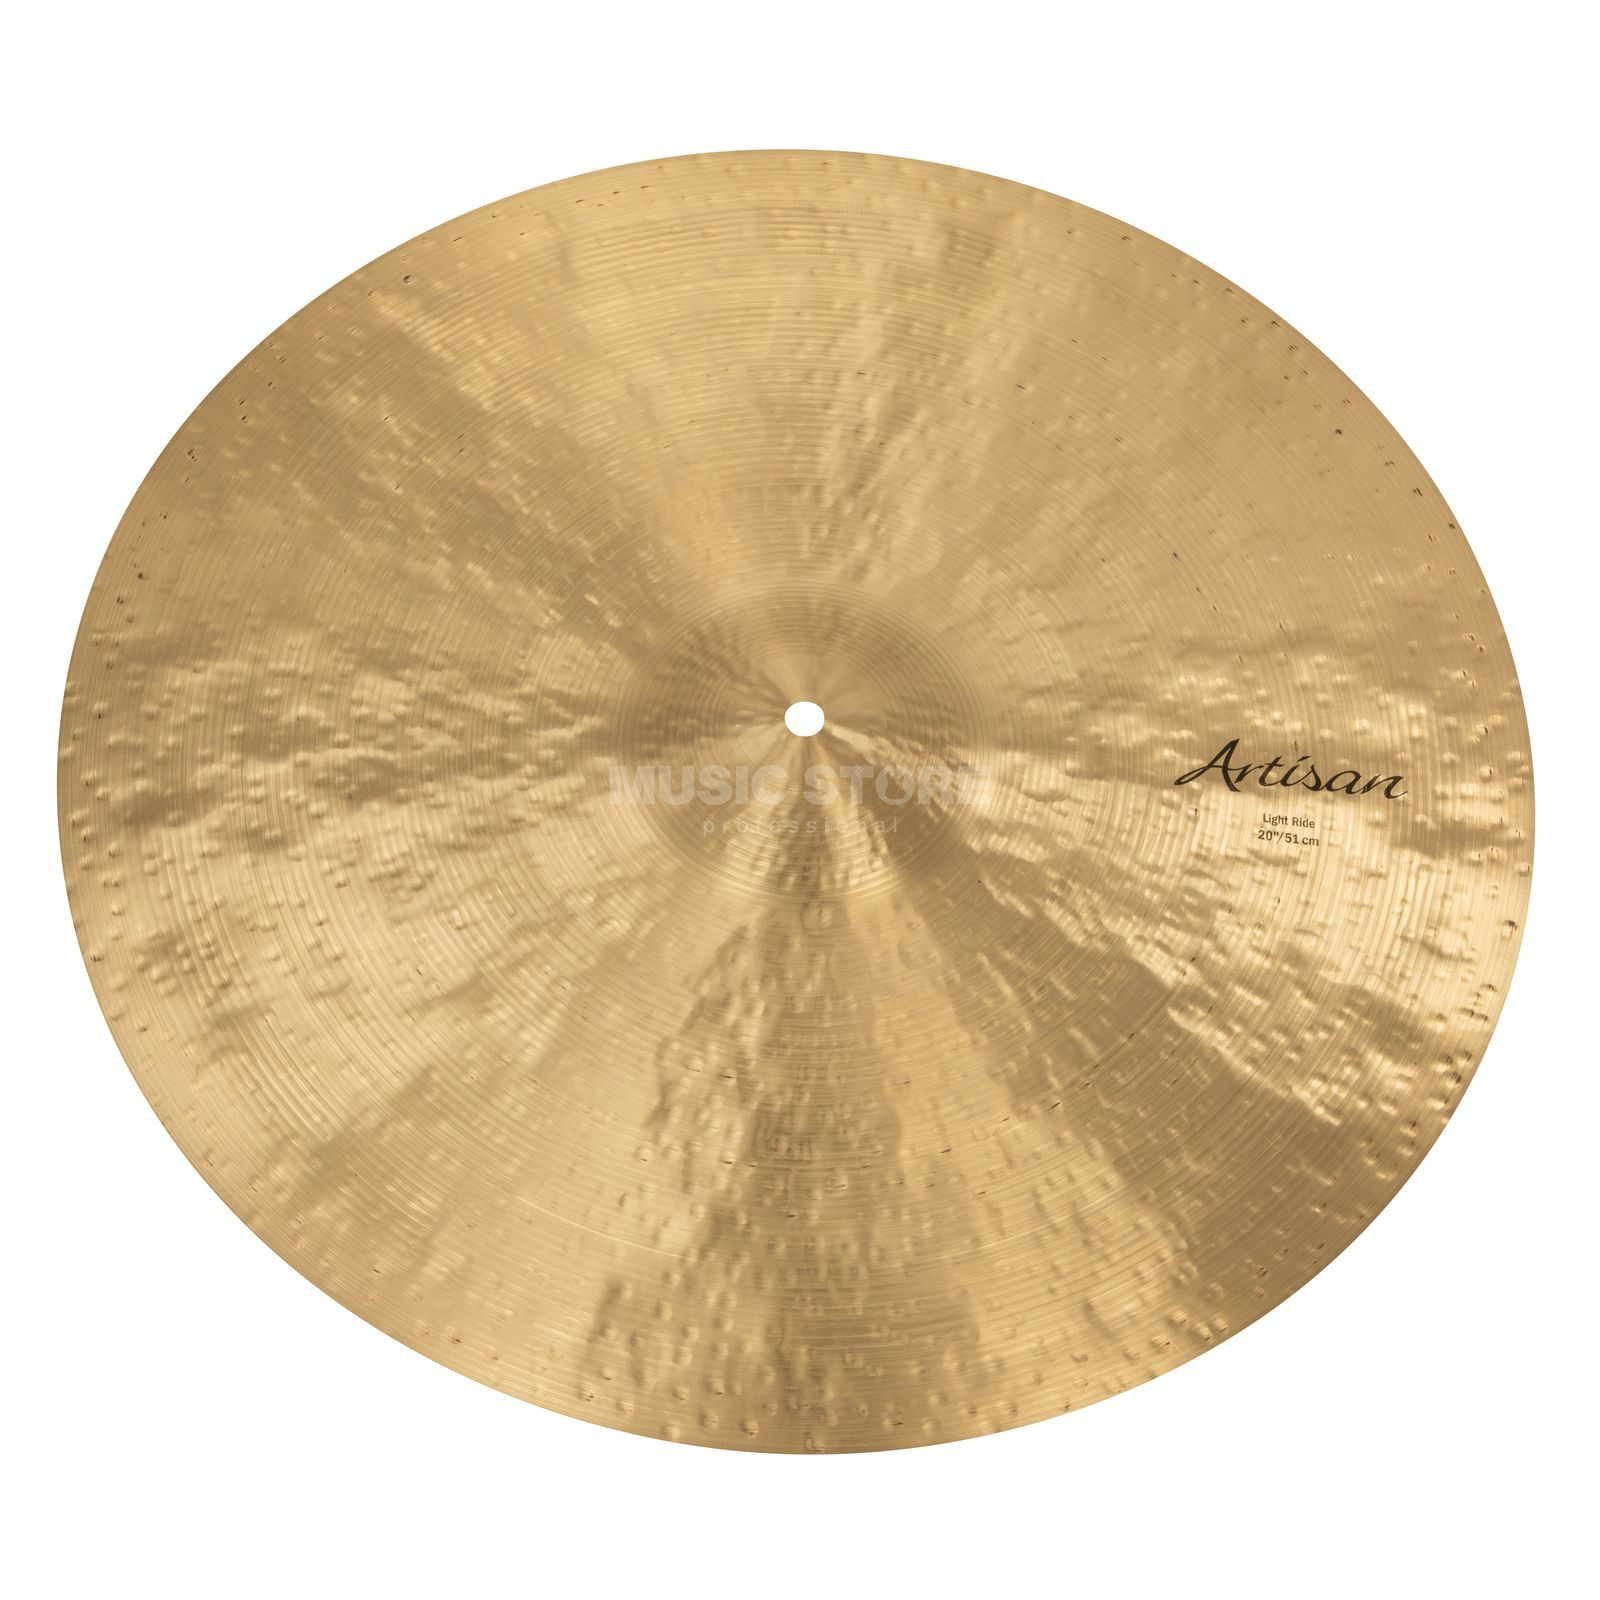 "Sabian Artisan Light Ride 20"", Natural Finish Produktbillede"